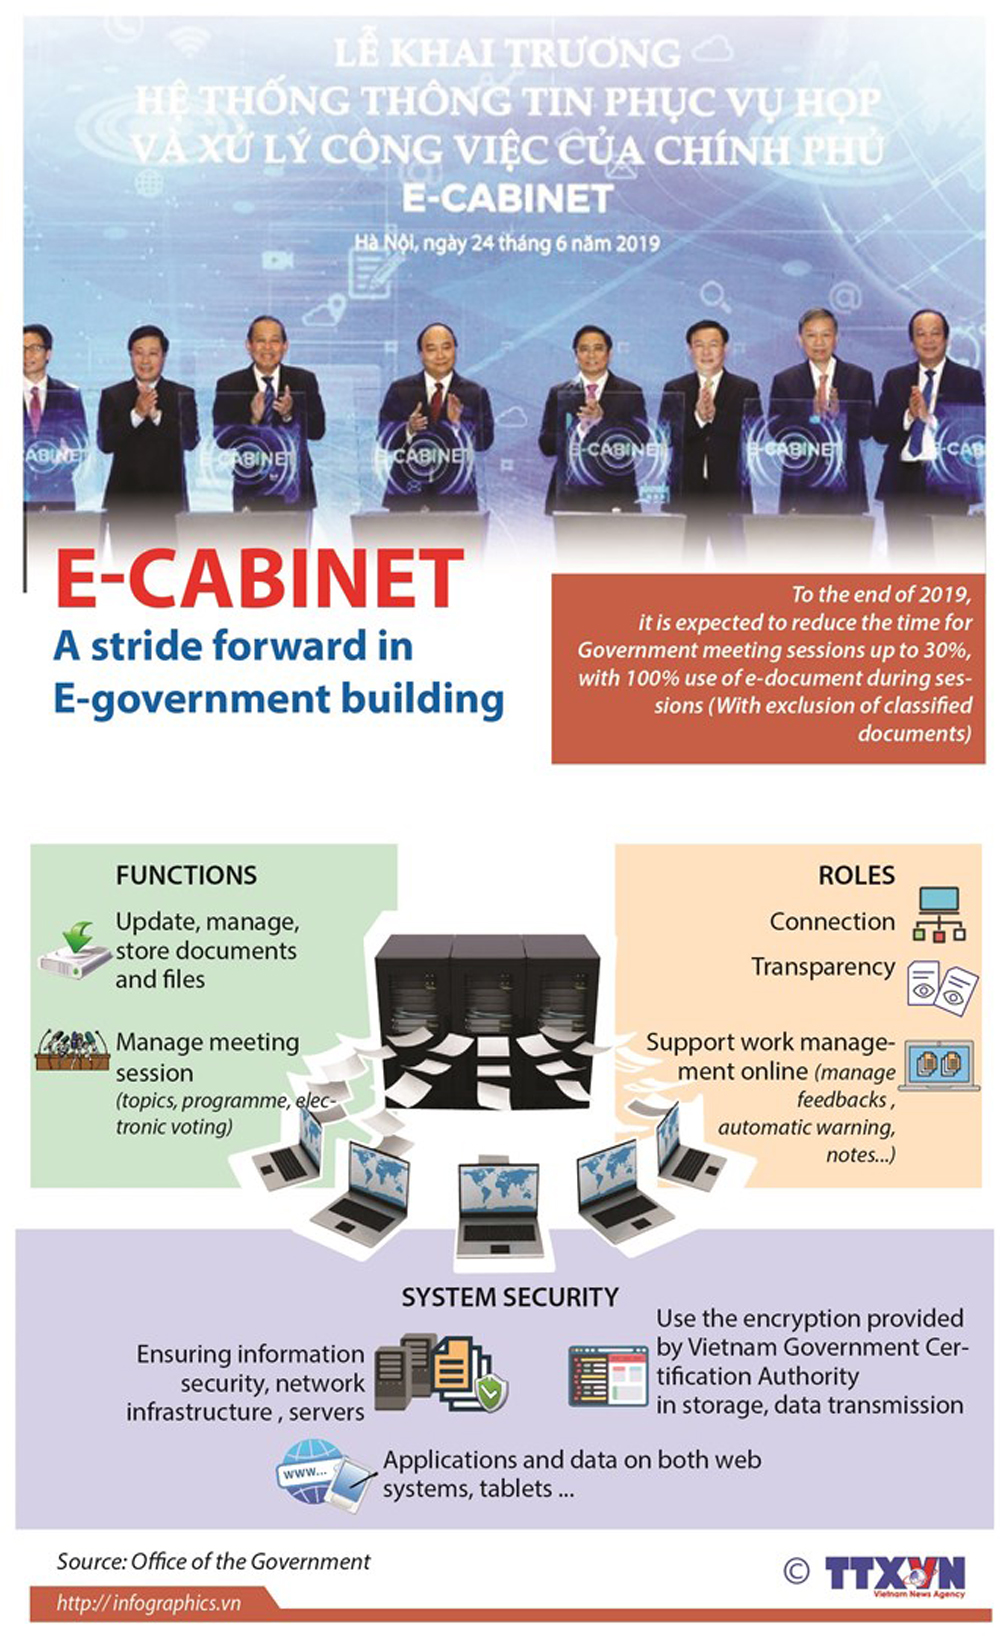 E-Cabinet, E-government building, government, security